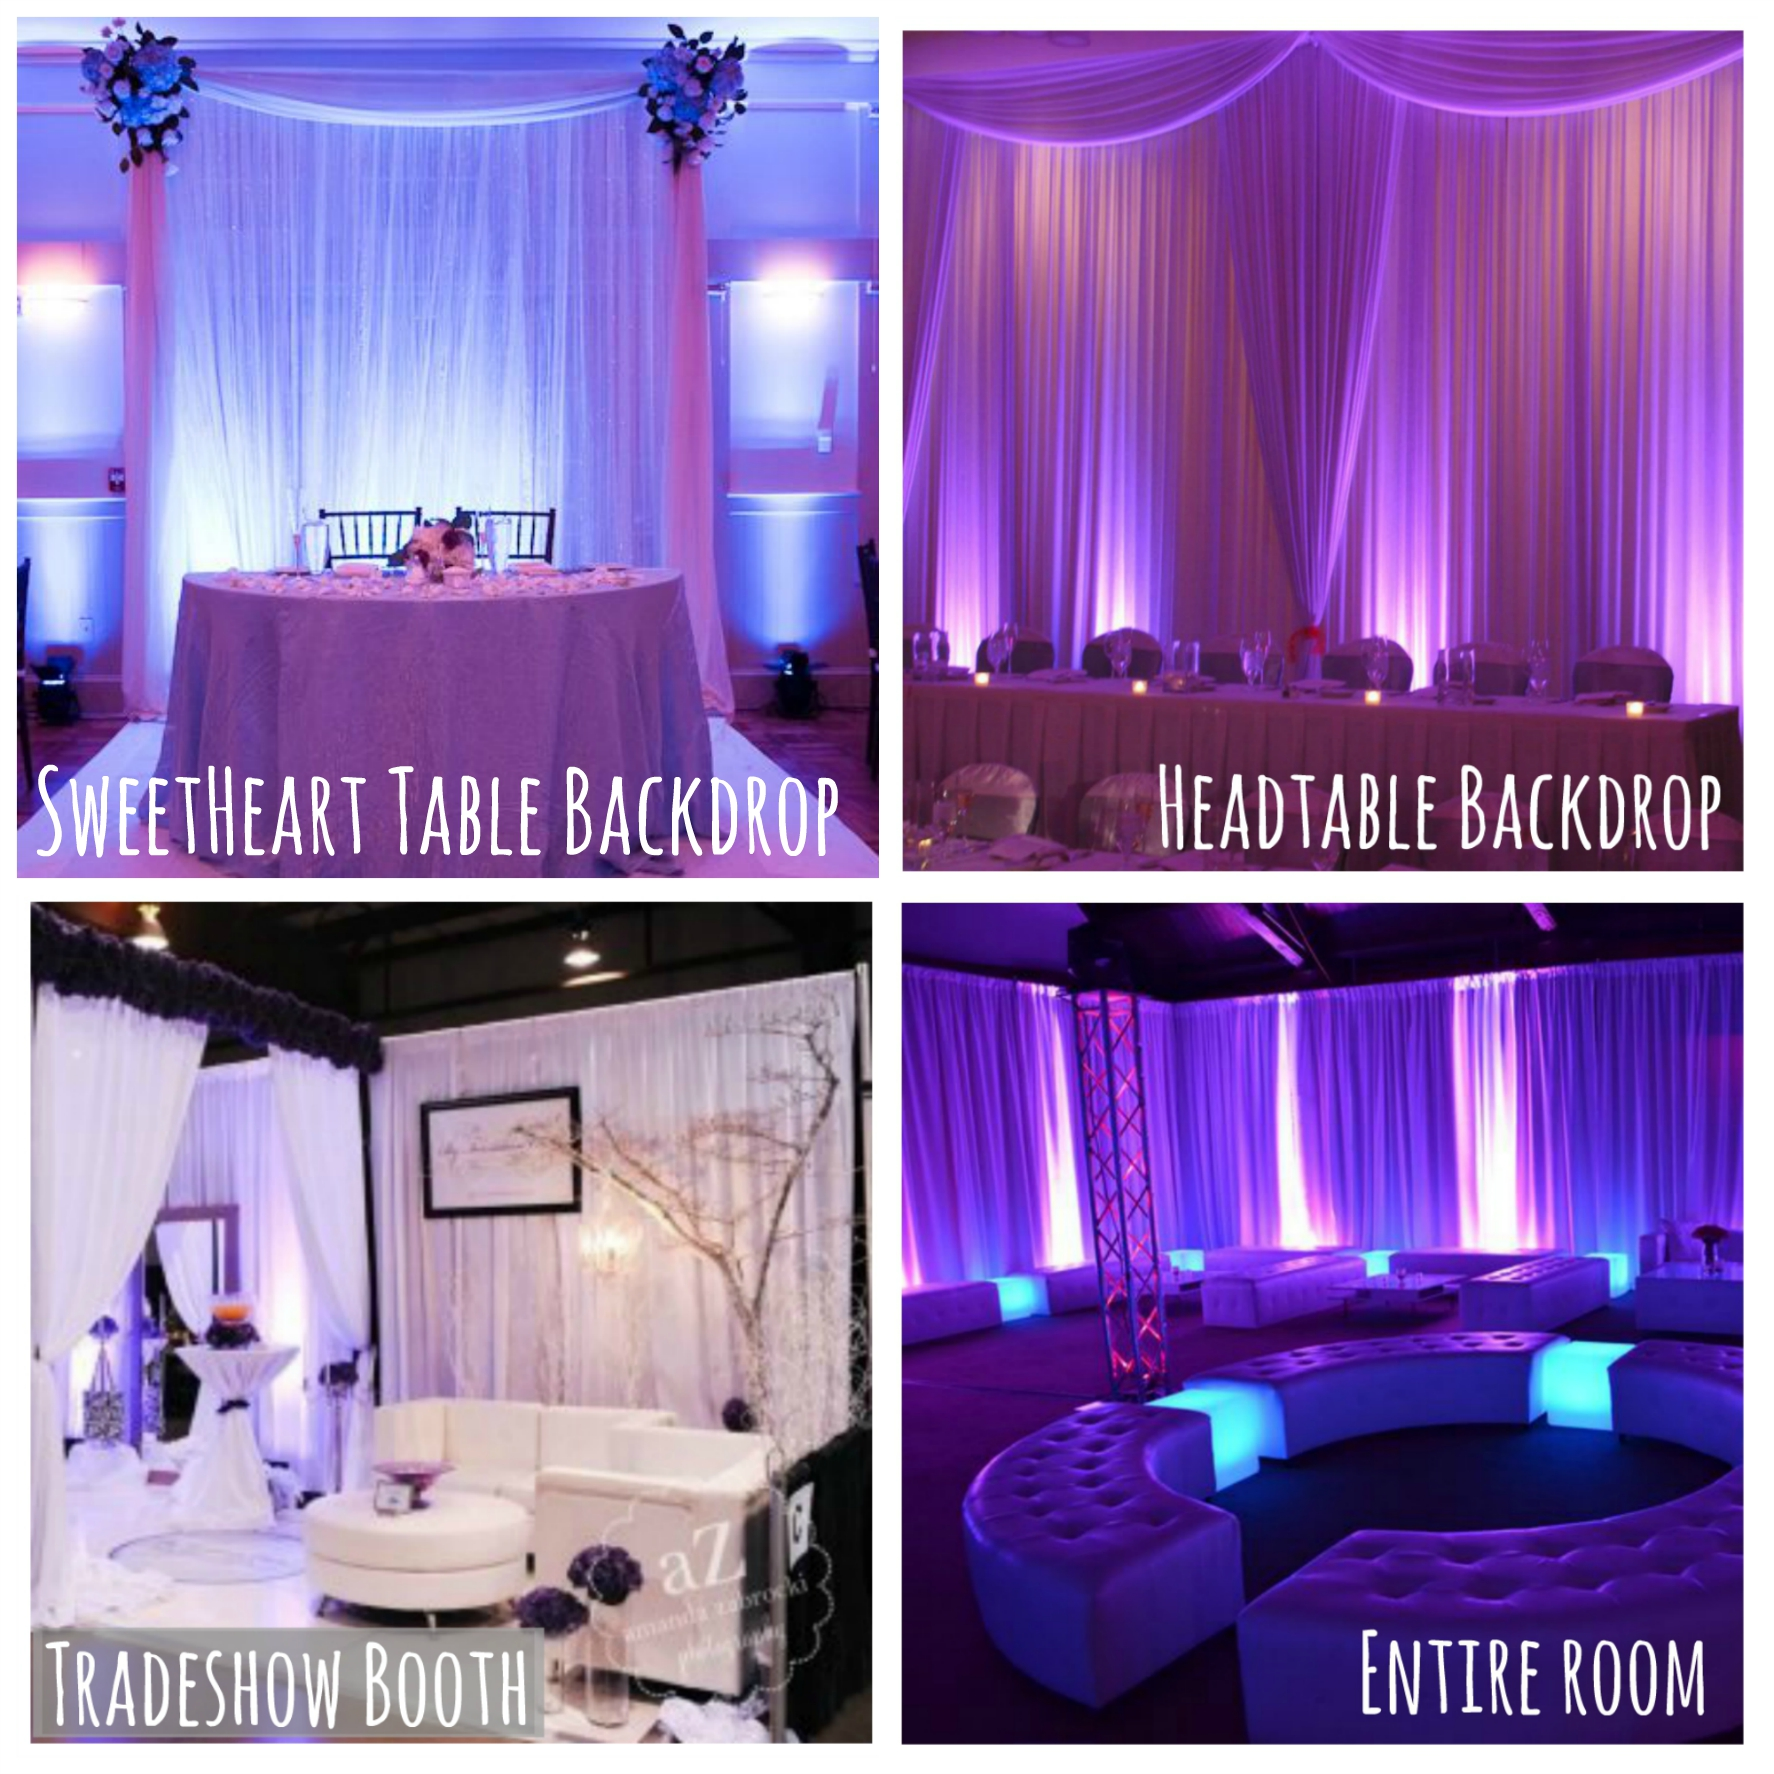 new product launch: diy pipe & drape backdrops! – rent my wedding – blog